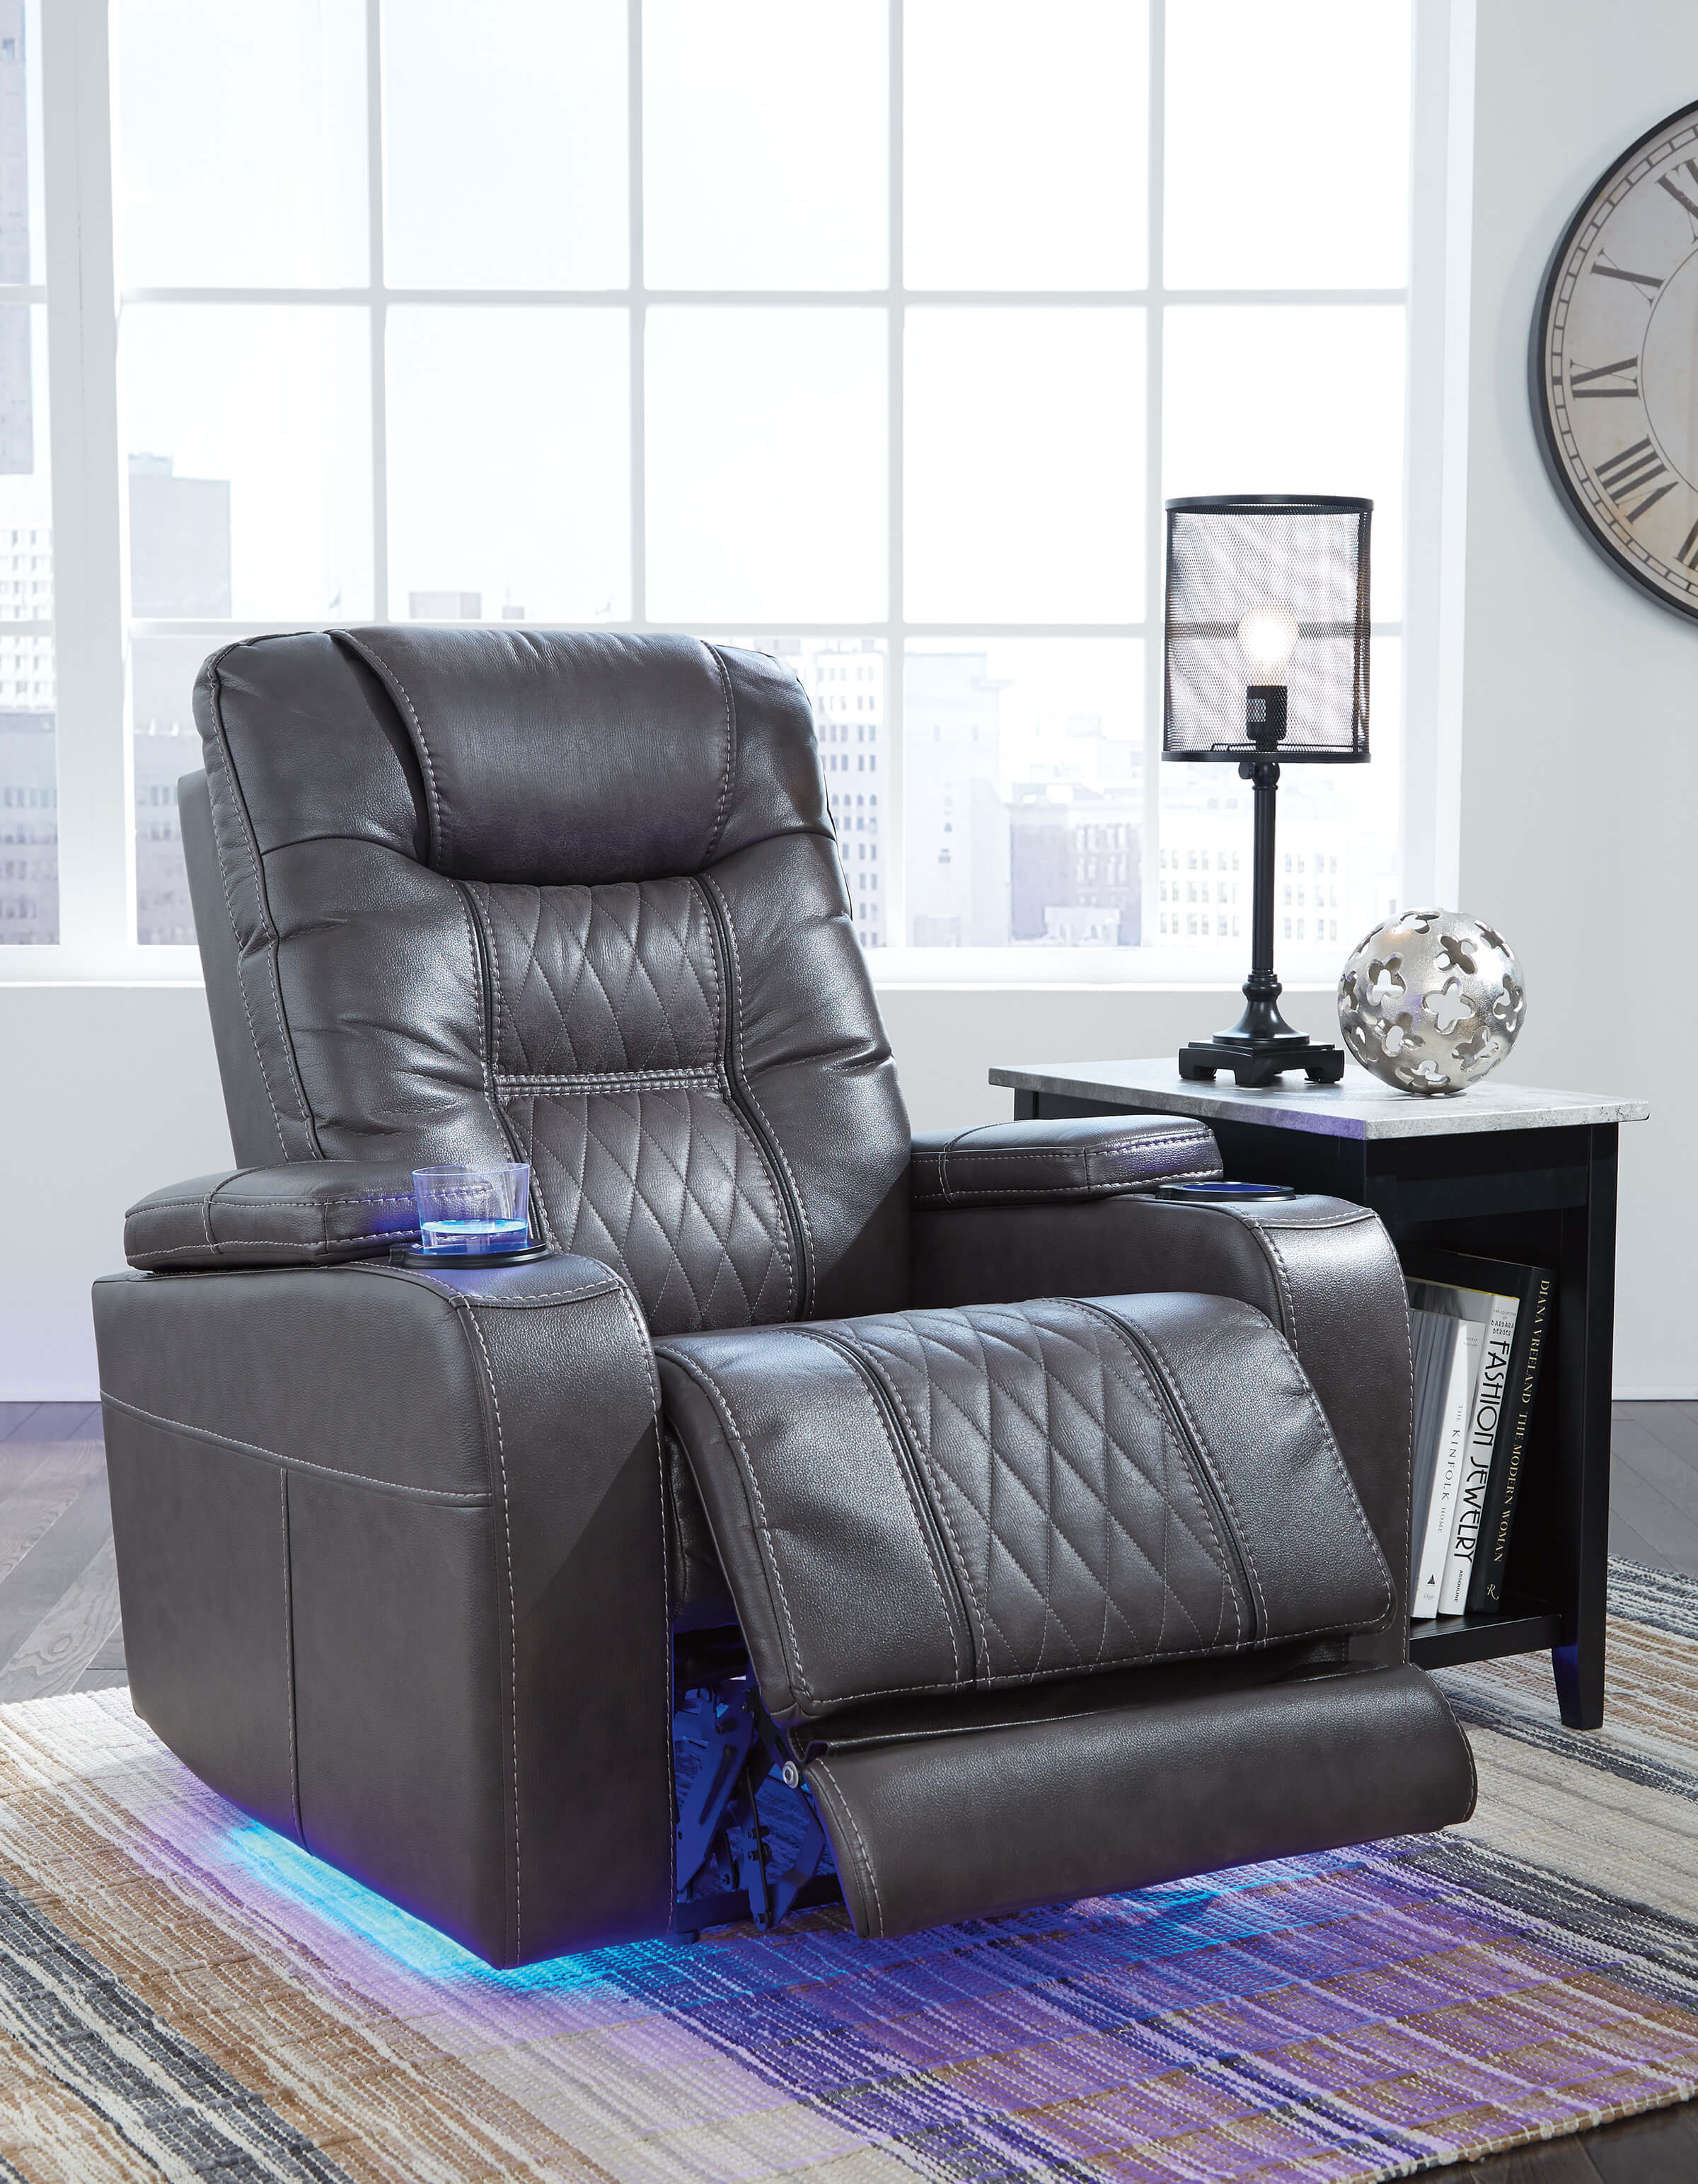 Composer Gray Power Recliner Urban Furniture Outlet